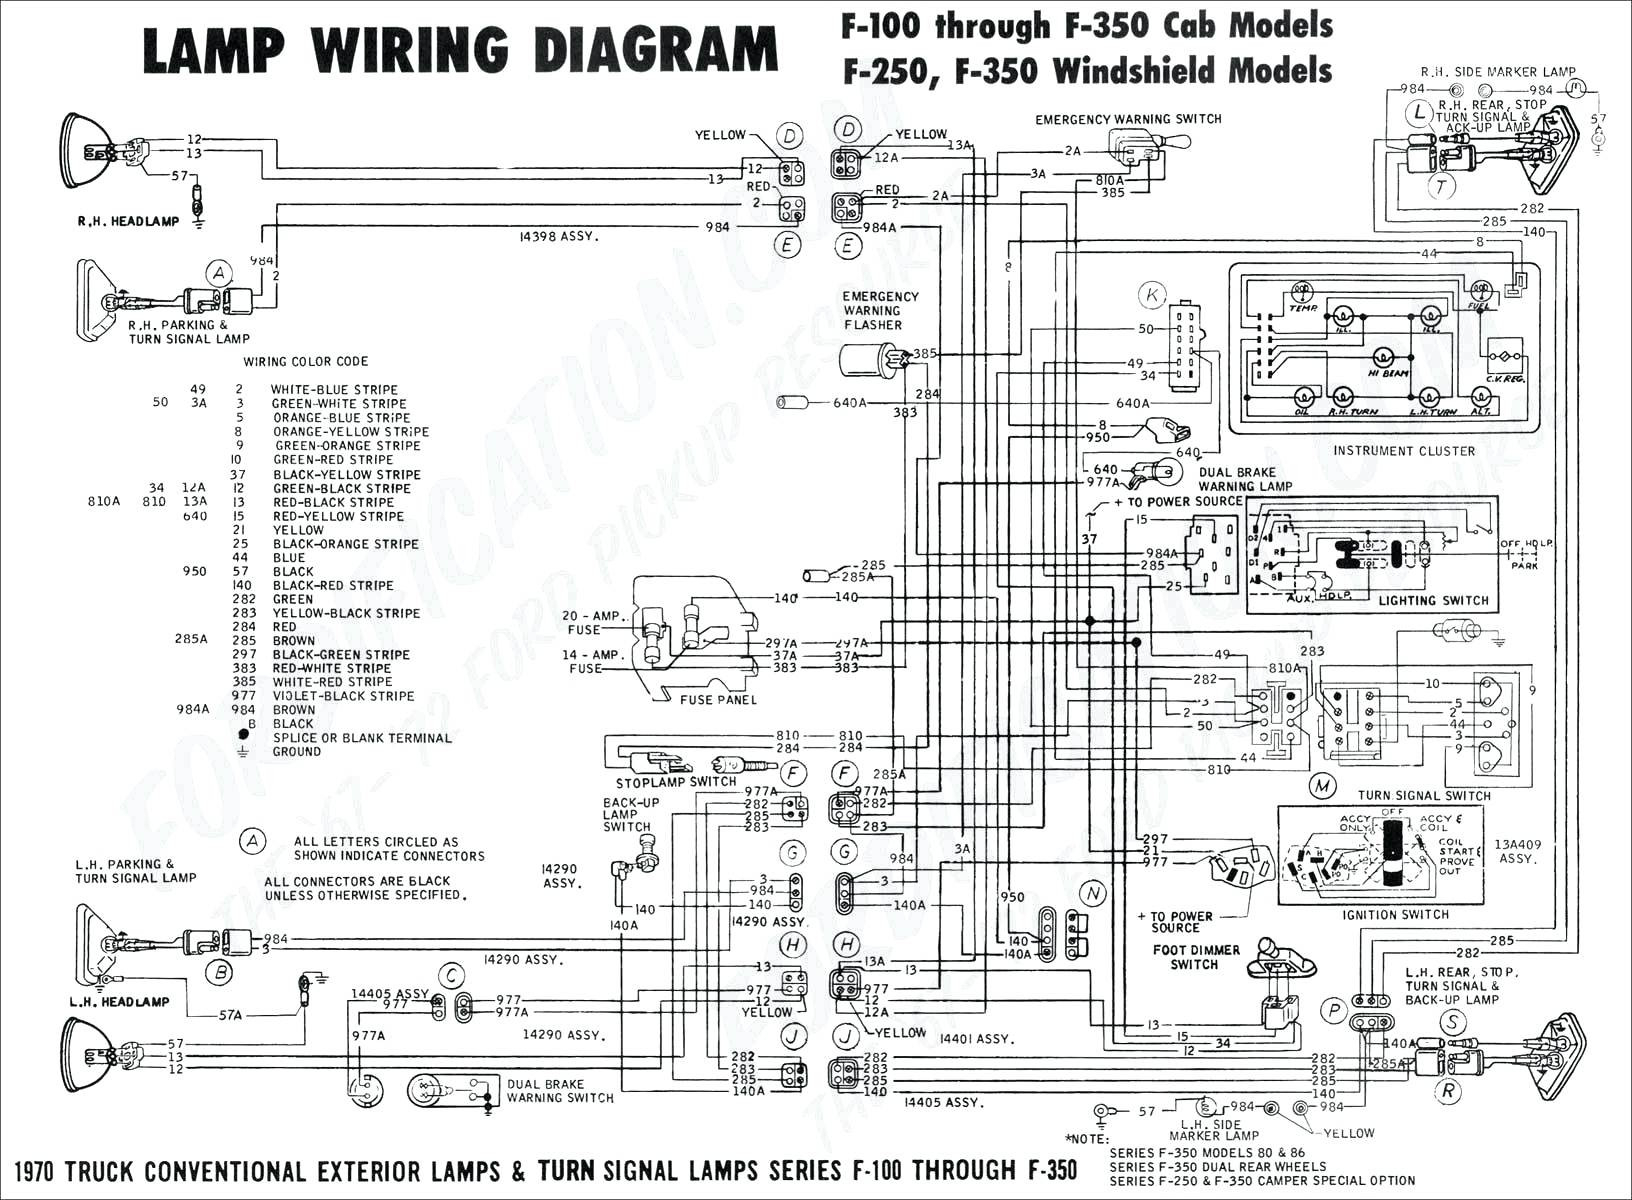 1995 E420 Wiring Diagram. i have a 1995 mercedes benz e320 i have repaired  the. 1995 ford f250 trailer wiring diagram collection. 1995 ford f150 radio wiring  diagram free wiring diagram. 19942002-acura-tl-radio.info